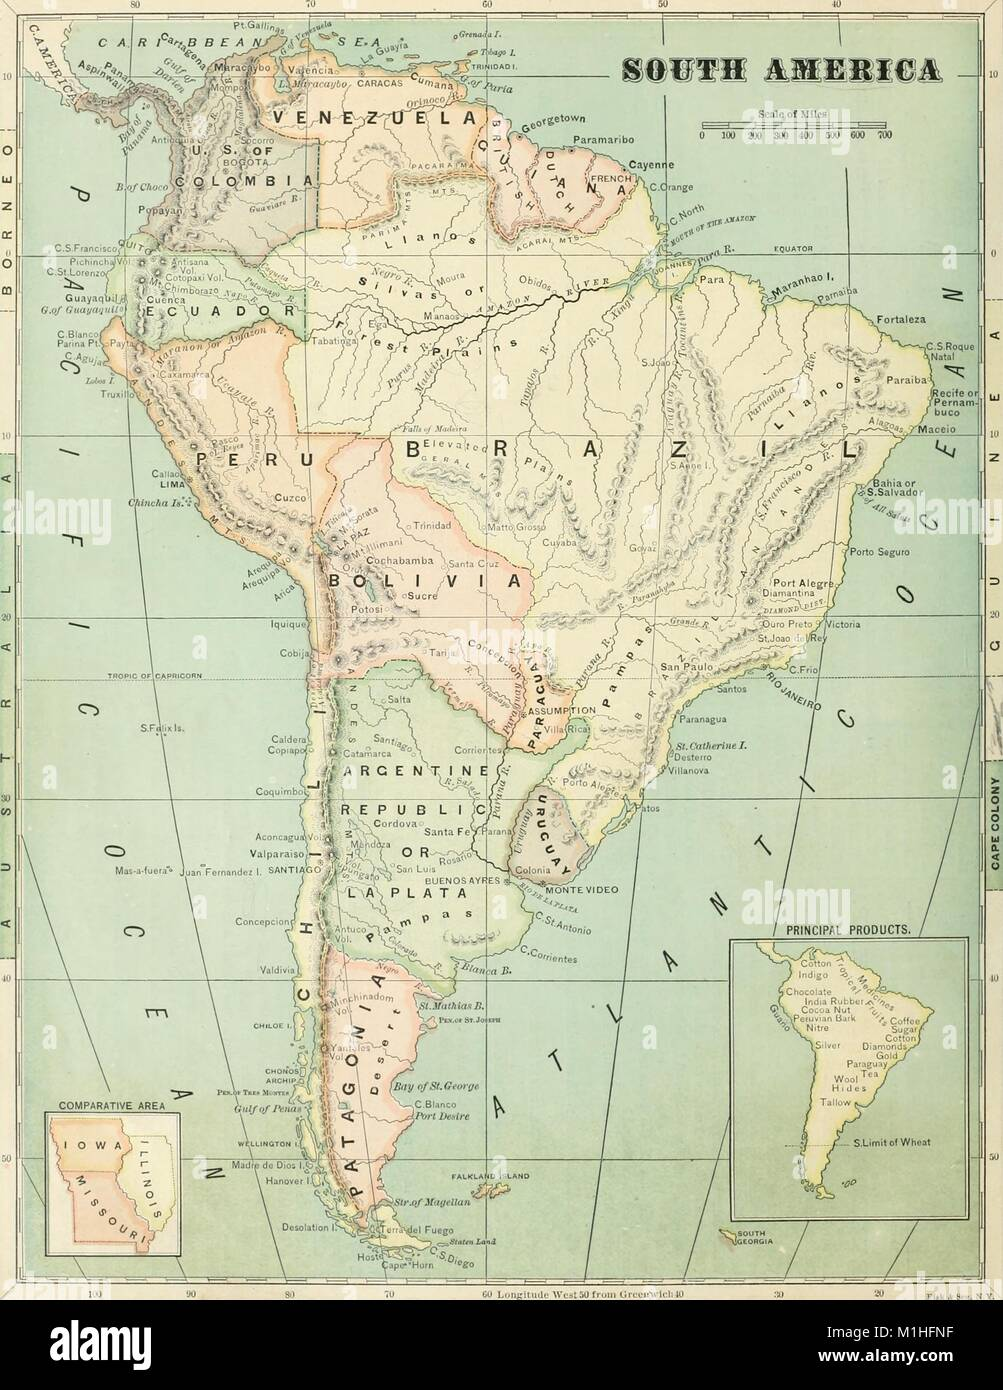 Color map of South America, with a scale, color-coded regions, and ...